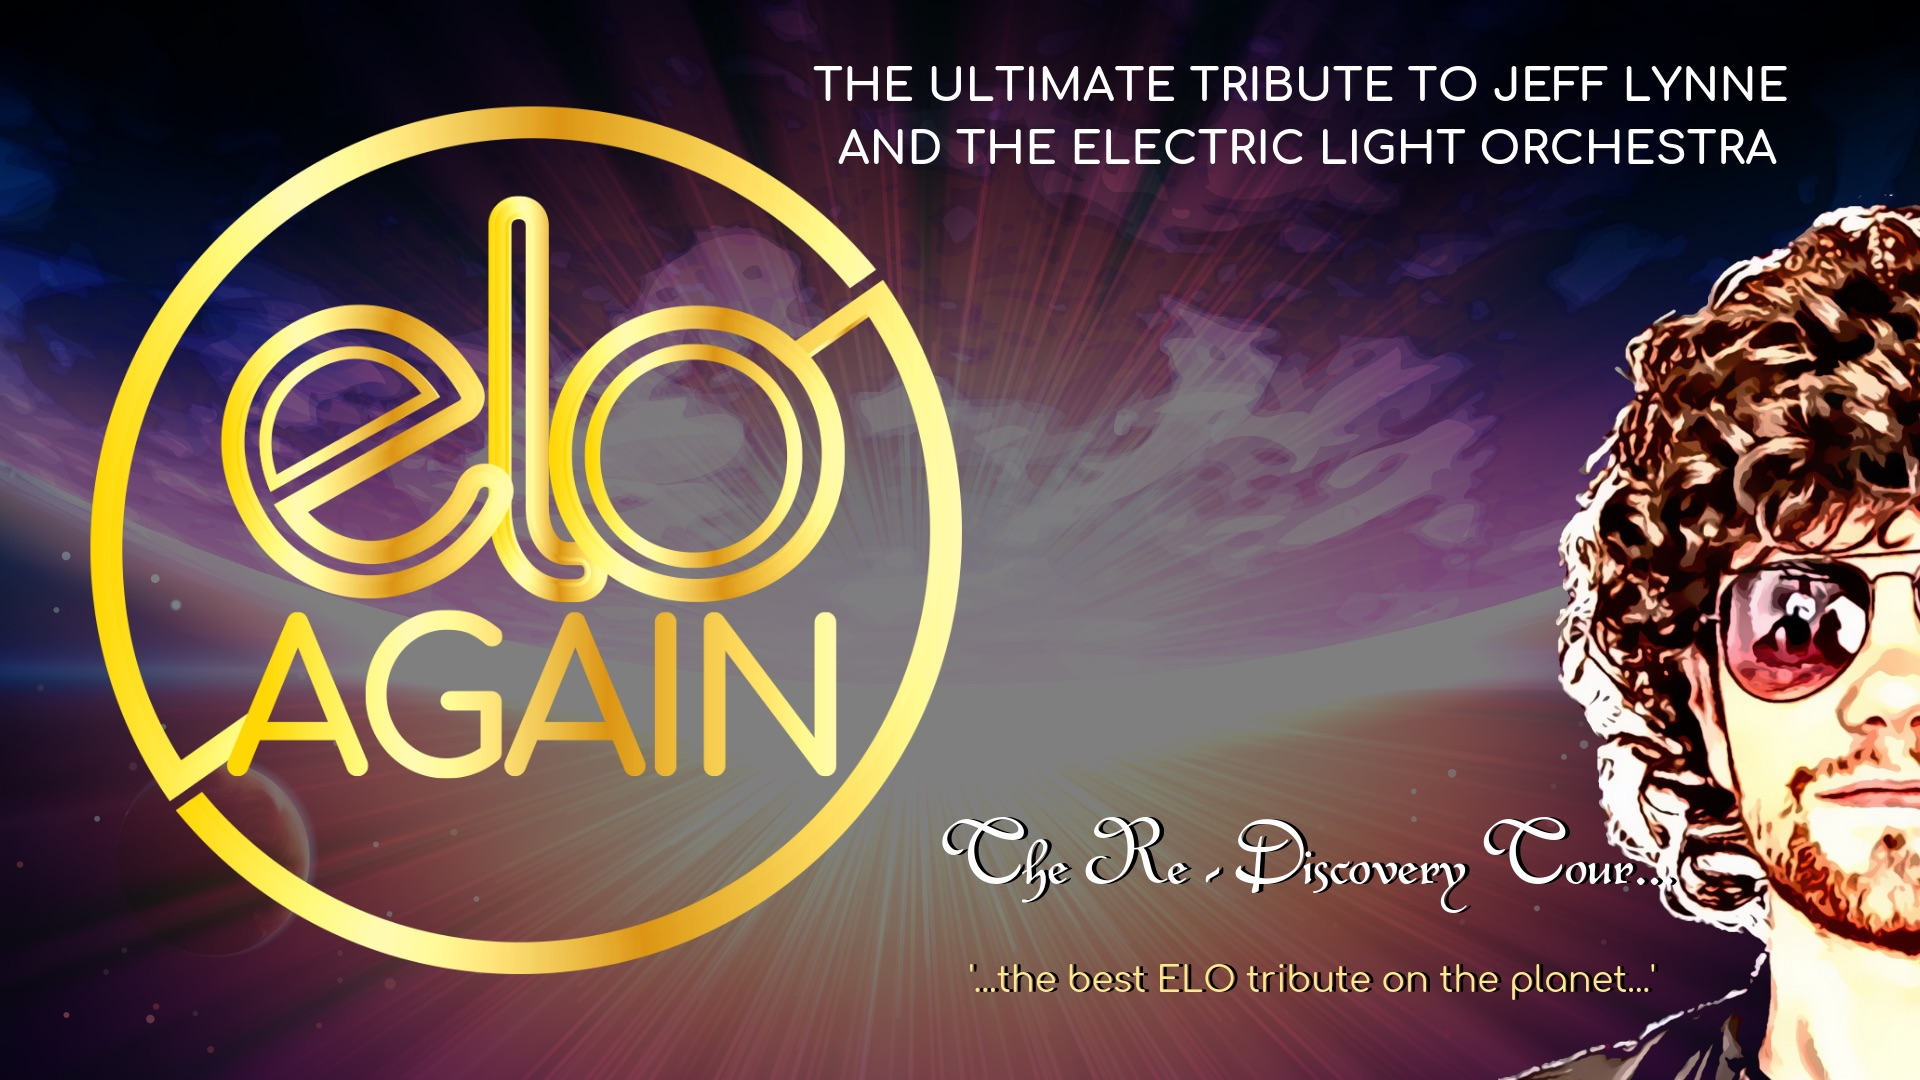 ELO Again - Re - DISCOVERY TOUR